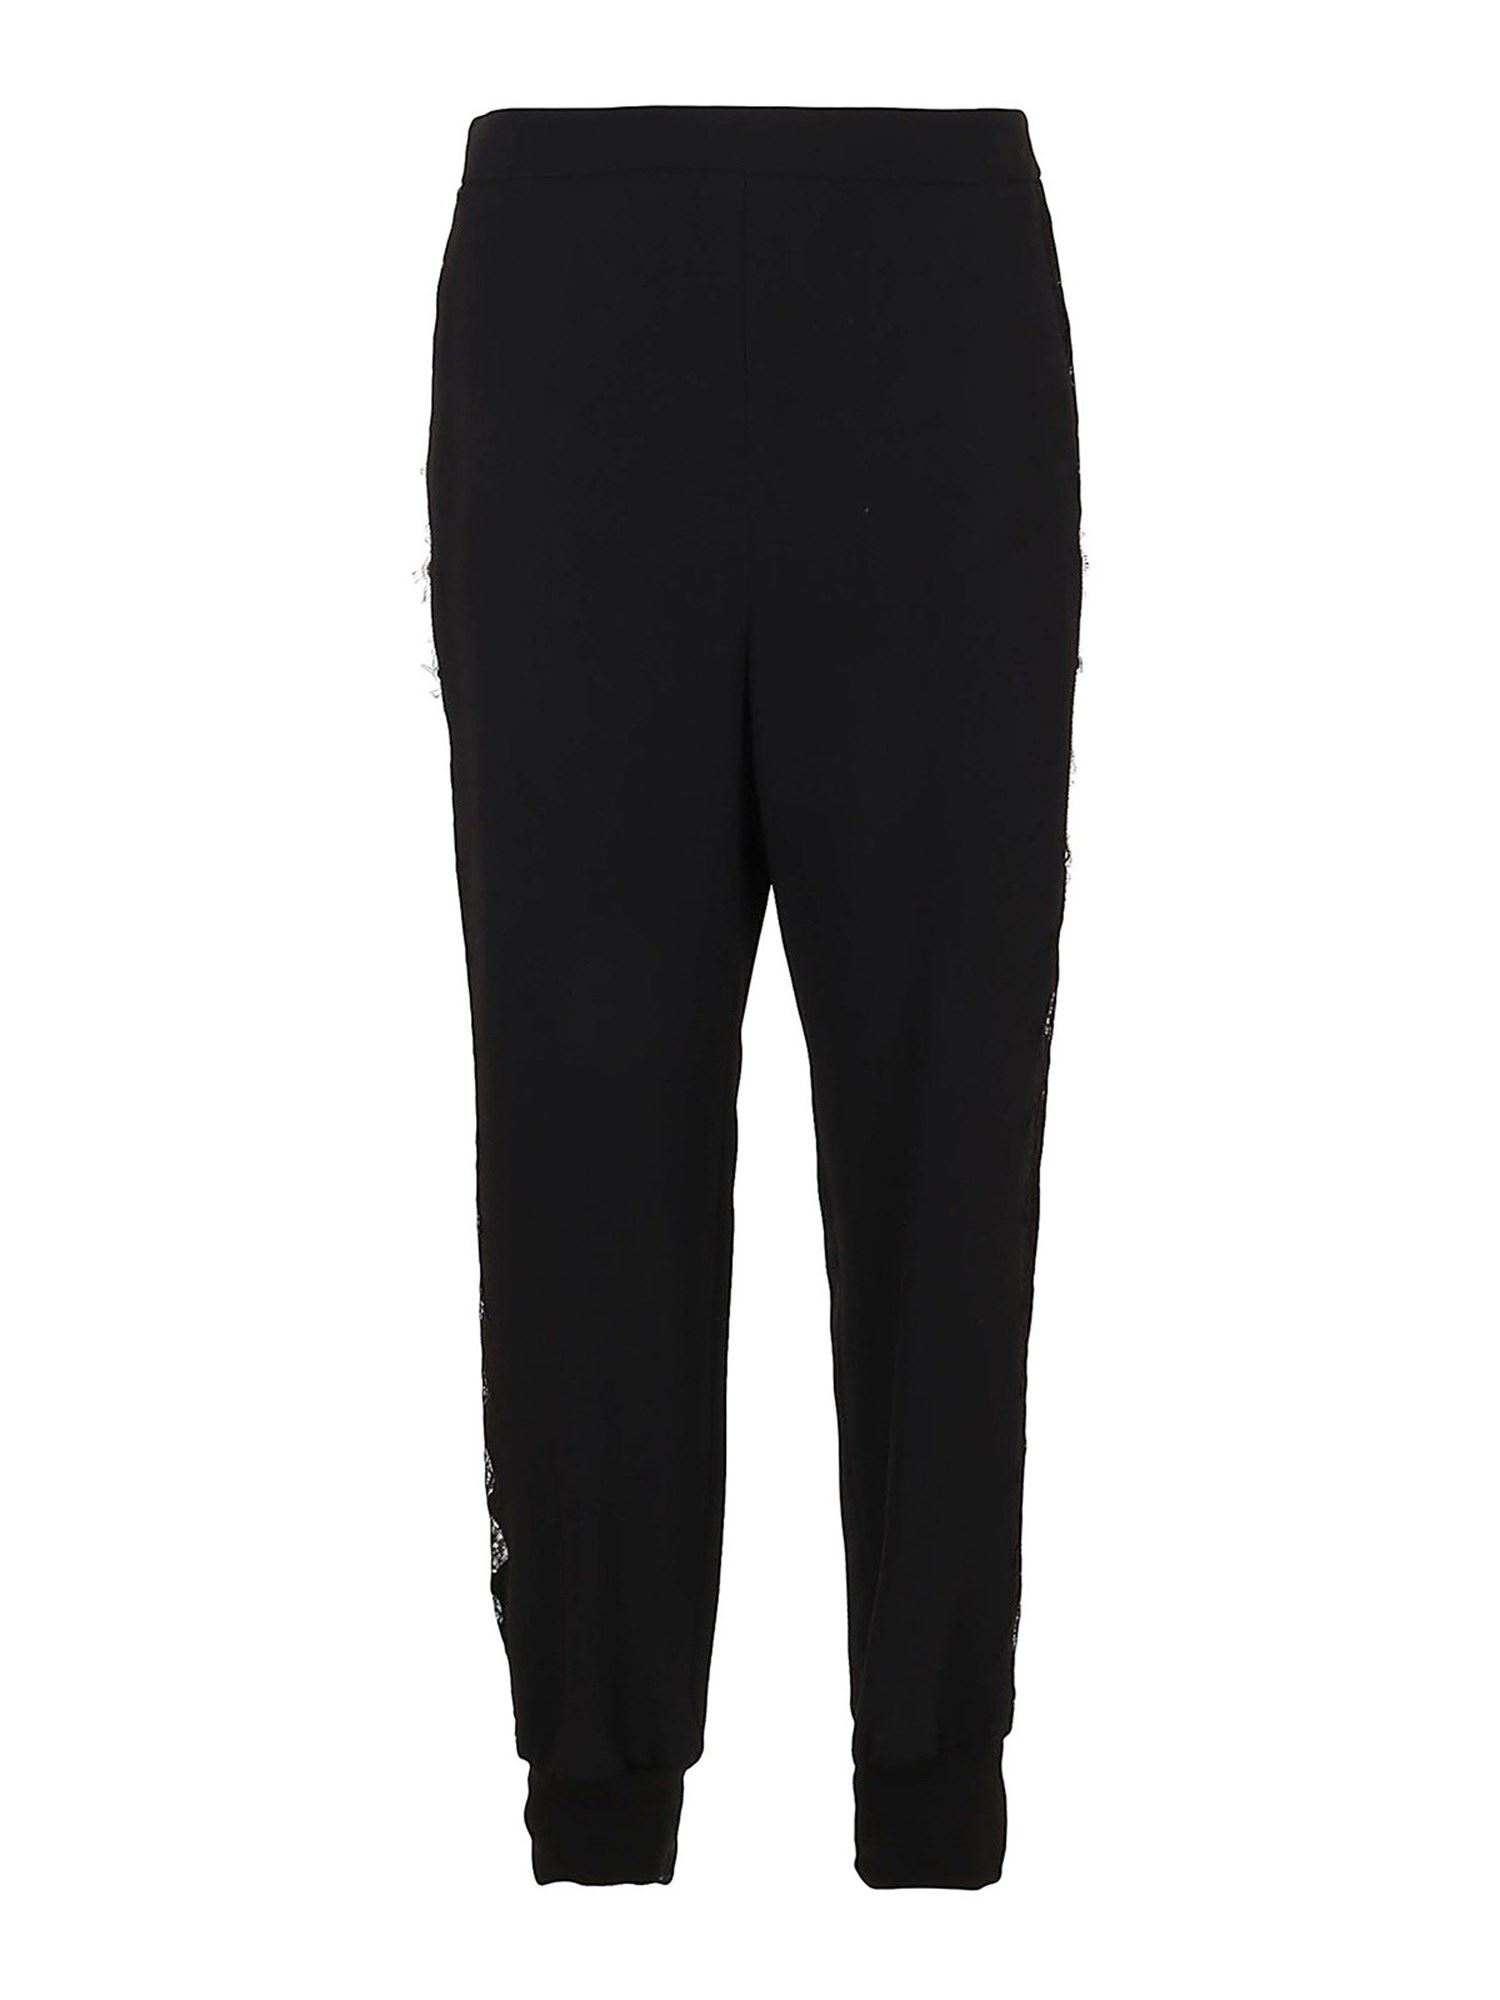 Stella Mccartney STELLA MCCARTNEY JULIA TRACKSUIT BOTTOMS IN BLACK